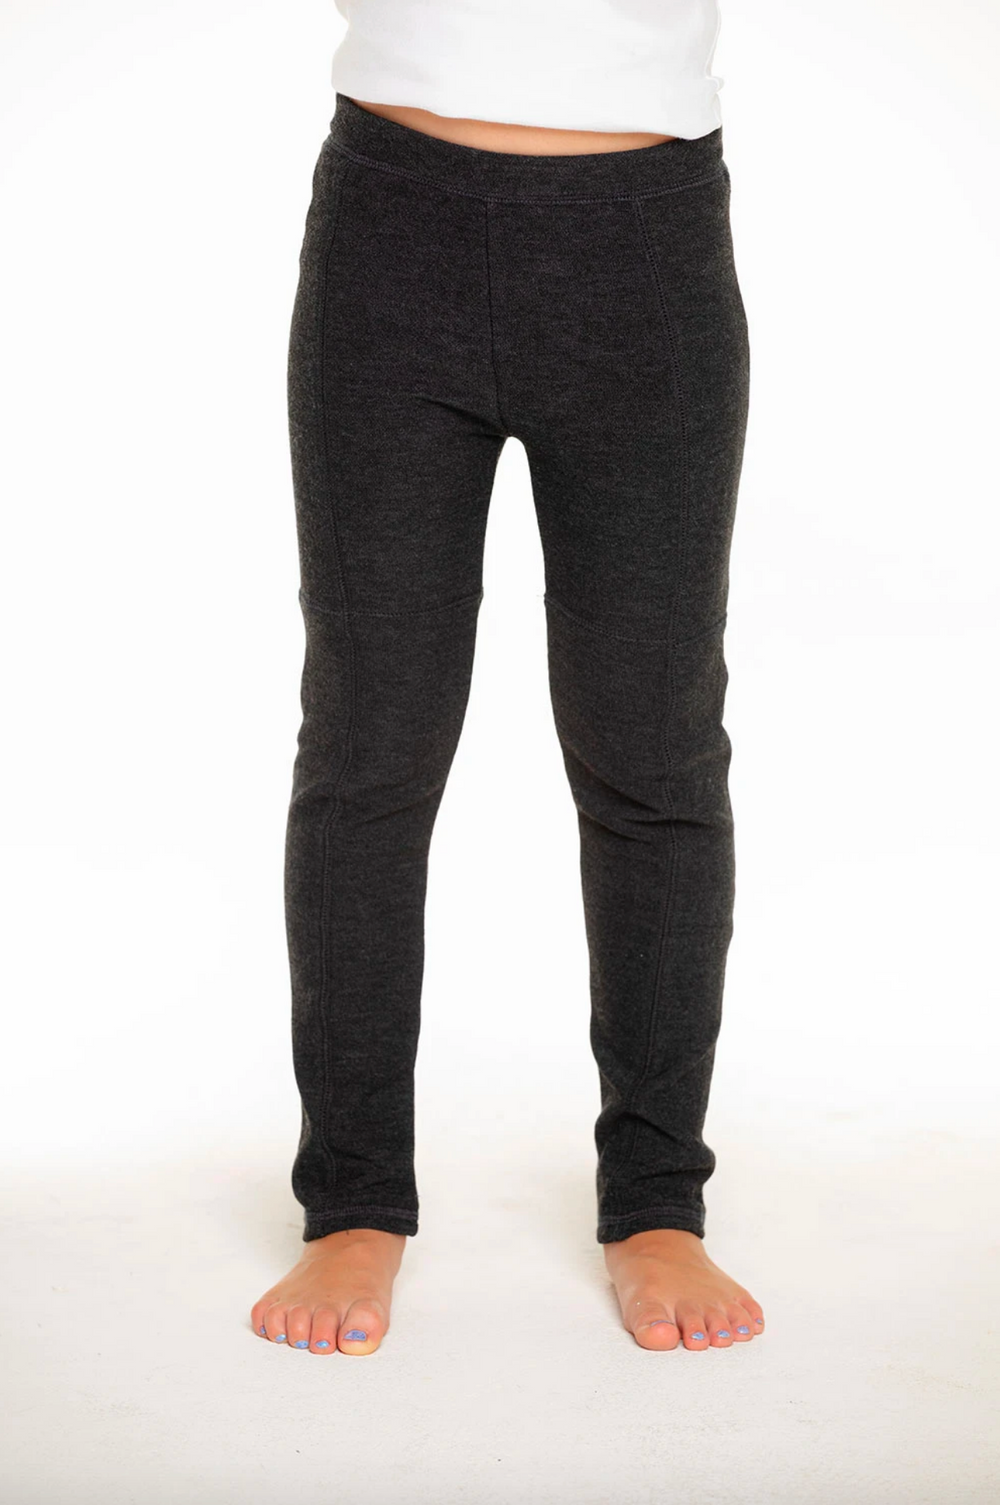 Chaser - Cozy Knit Seamed Panel Legging in Black